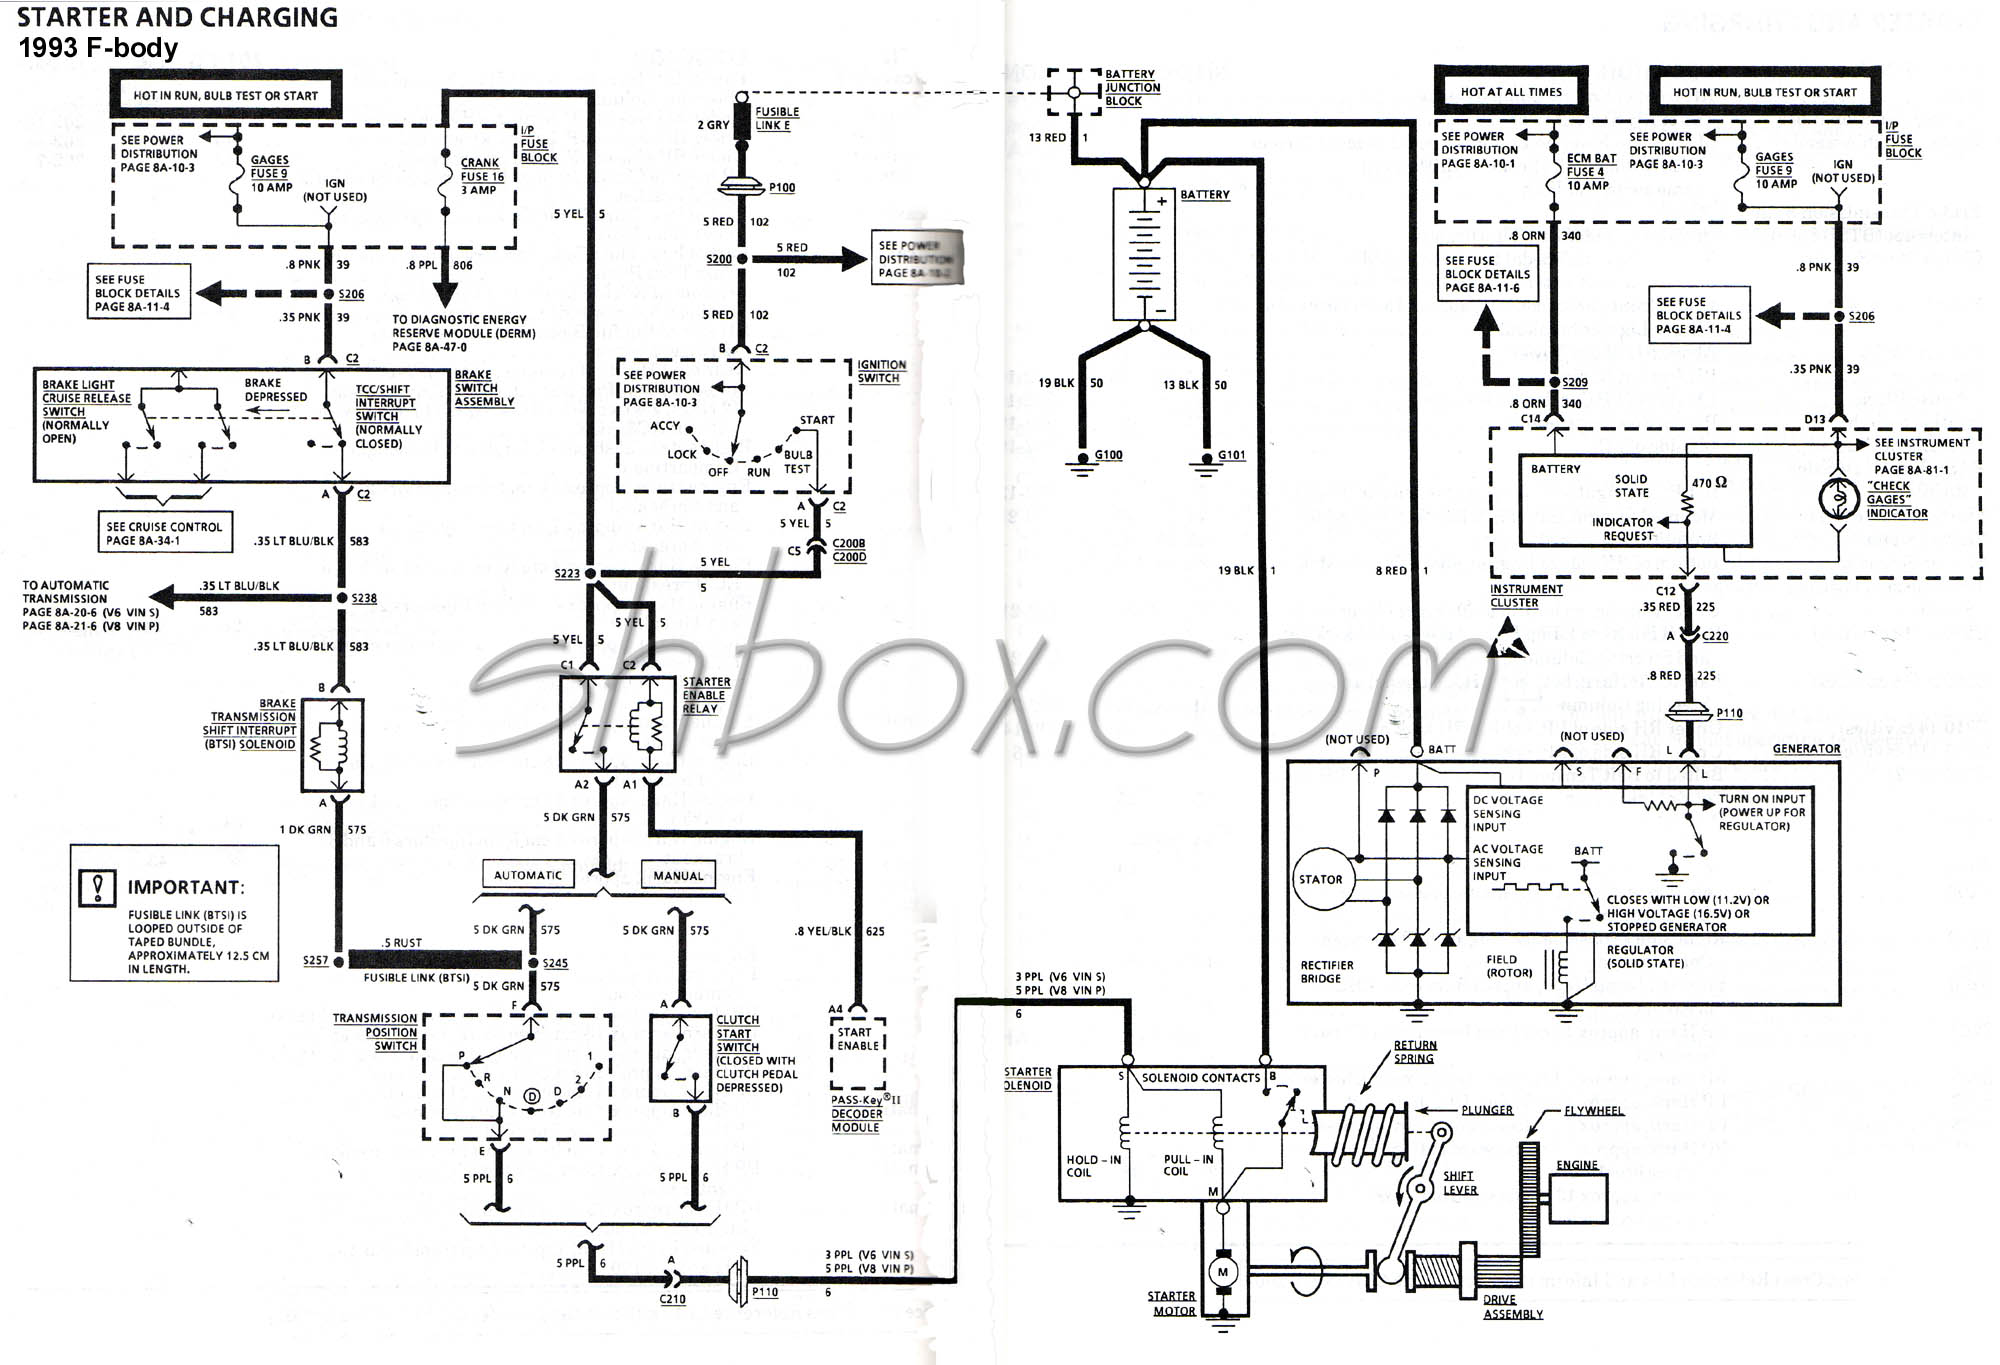 hight resolution of wire diagram 93 camaro auto electrical wiring diagram 1980 corvette wiring schematic 1980 camaro wiring schematic